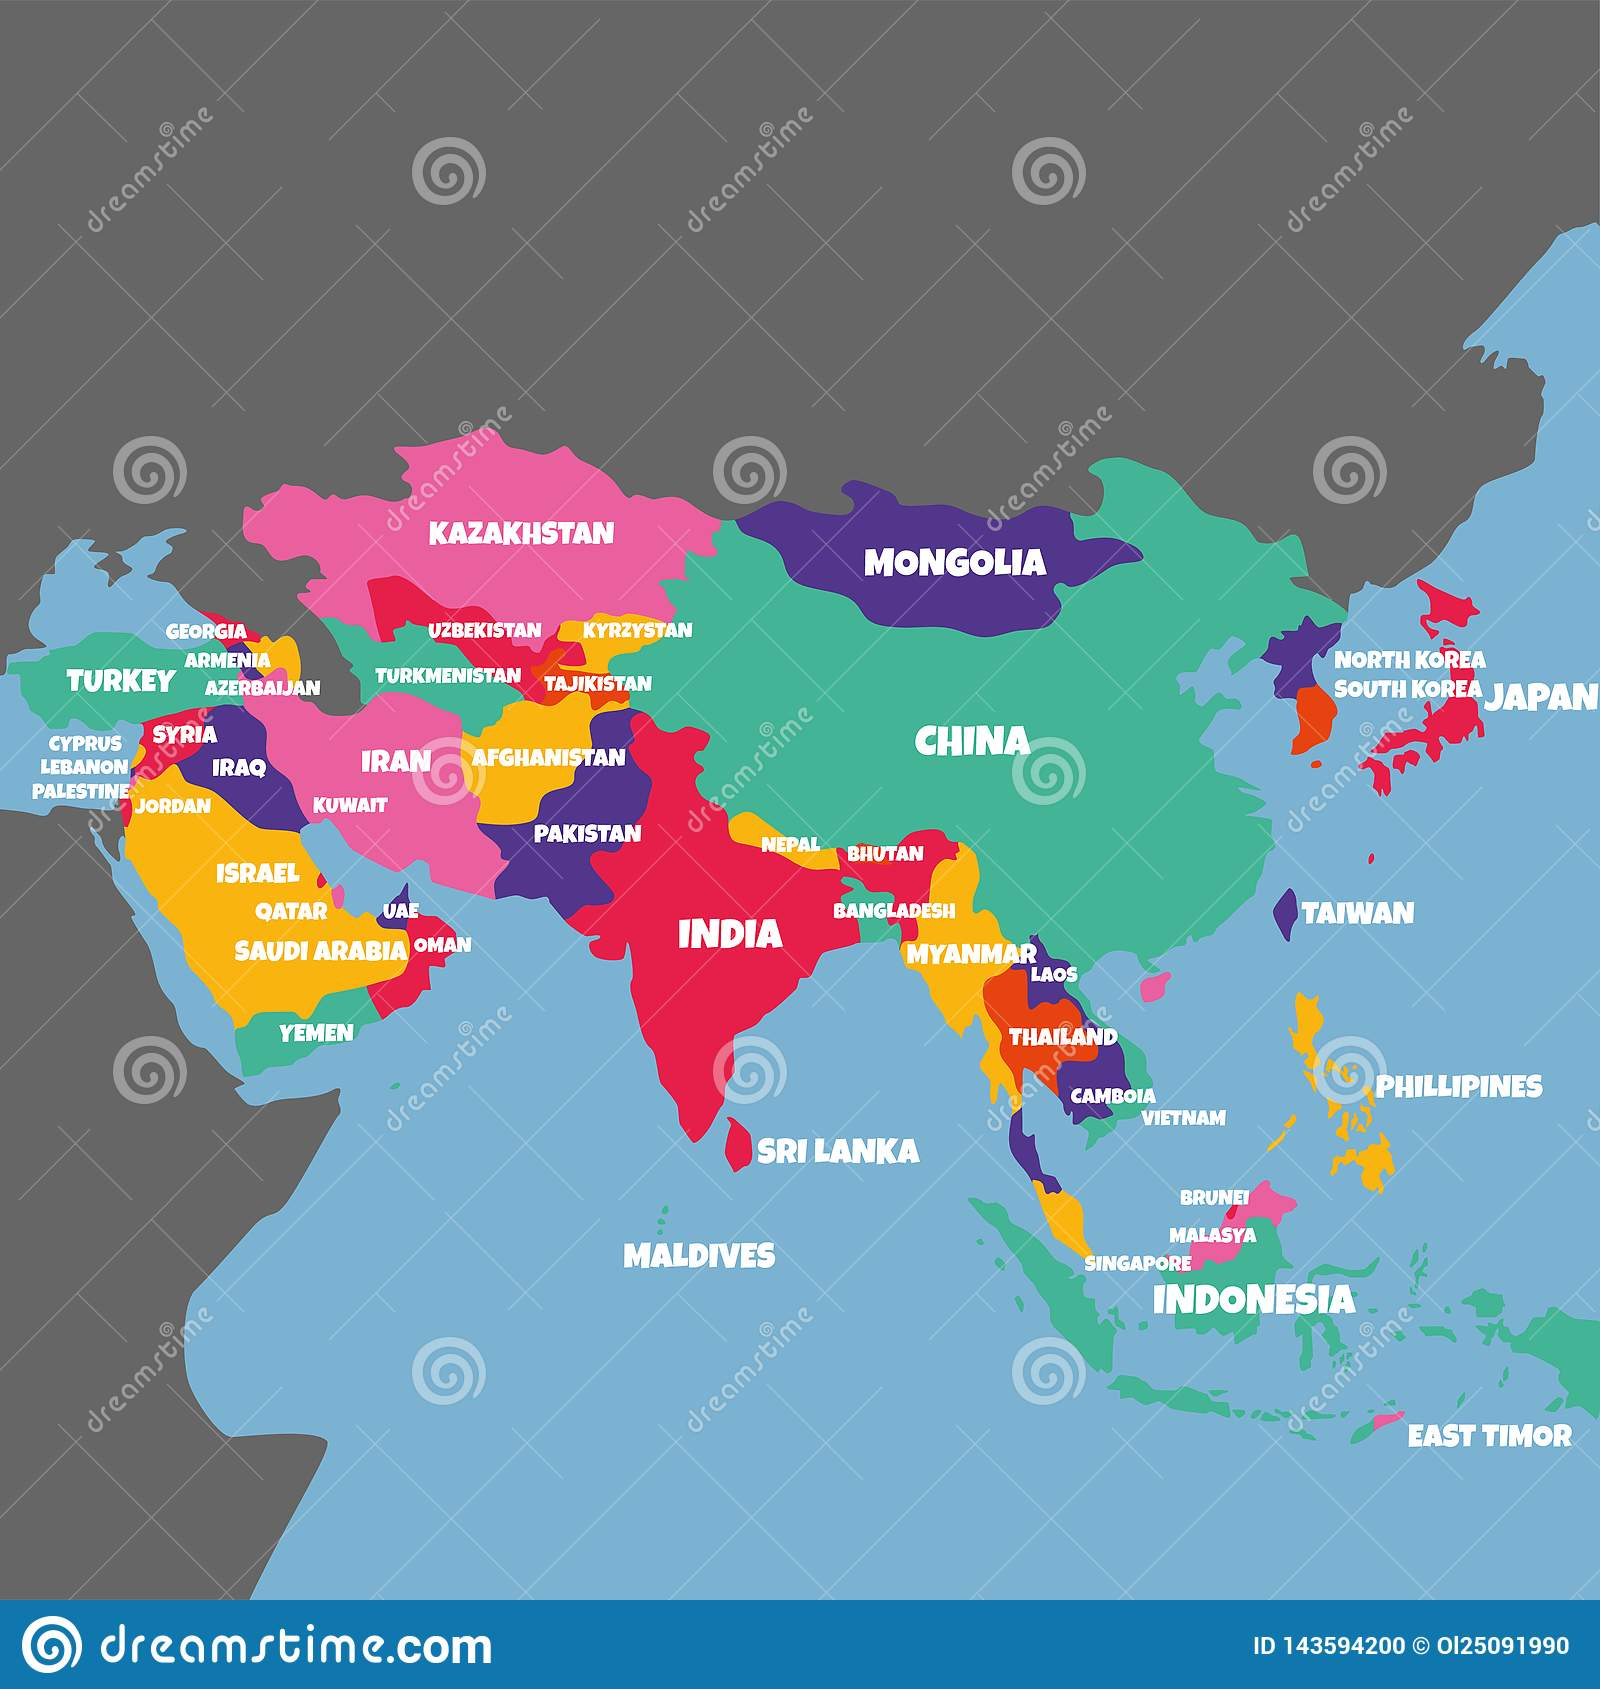 Asia Map Of Countries.Asia Map With The Name Of The Countries Stock Illustration